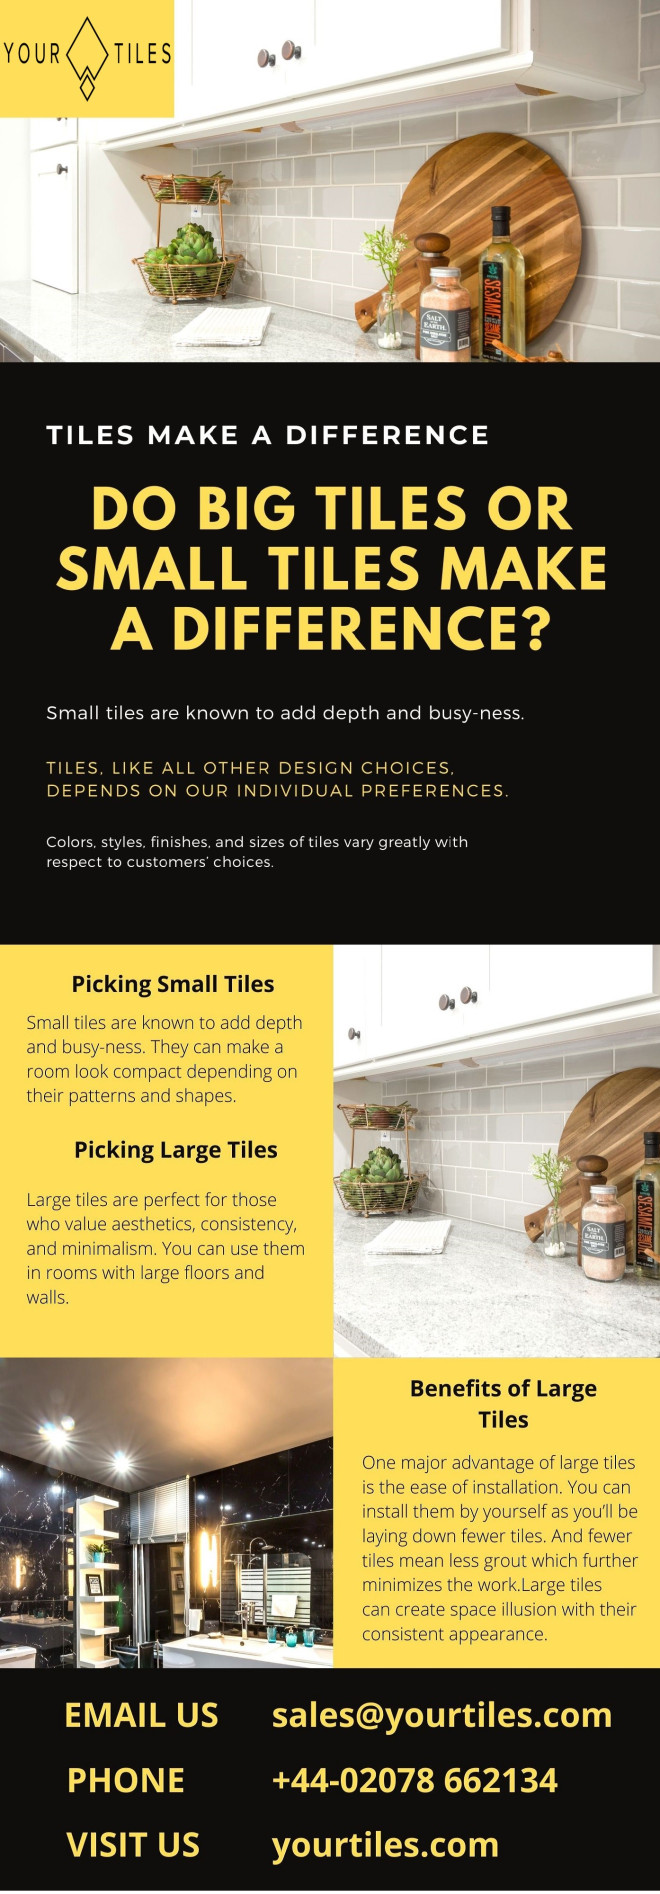 Do Big Tiles Or Small Tiles Make a Difference?